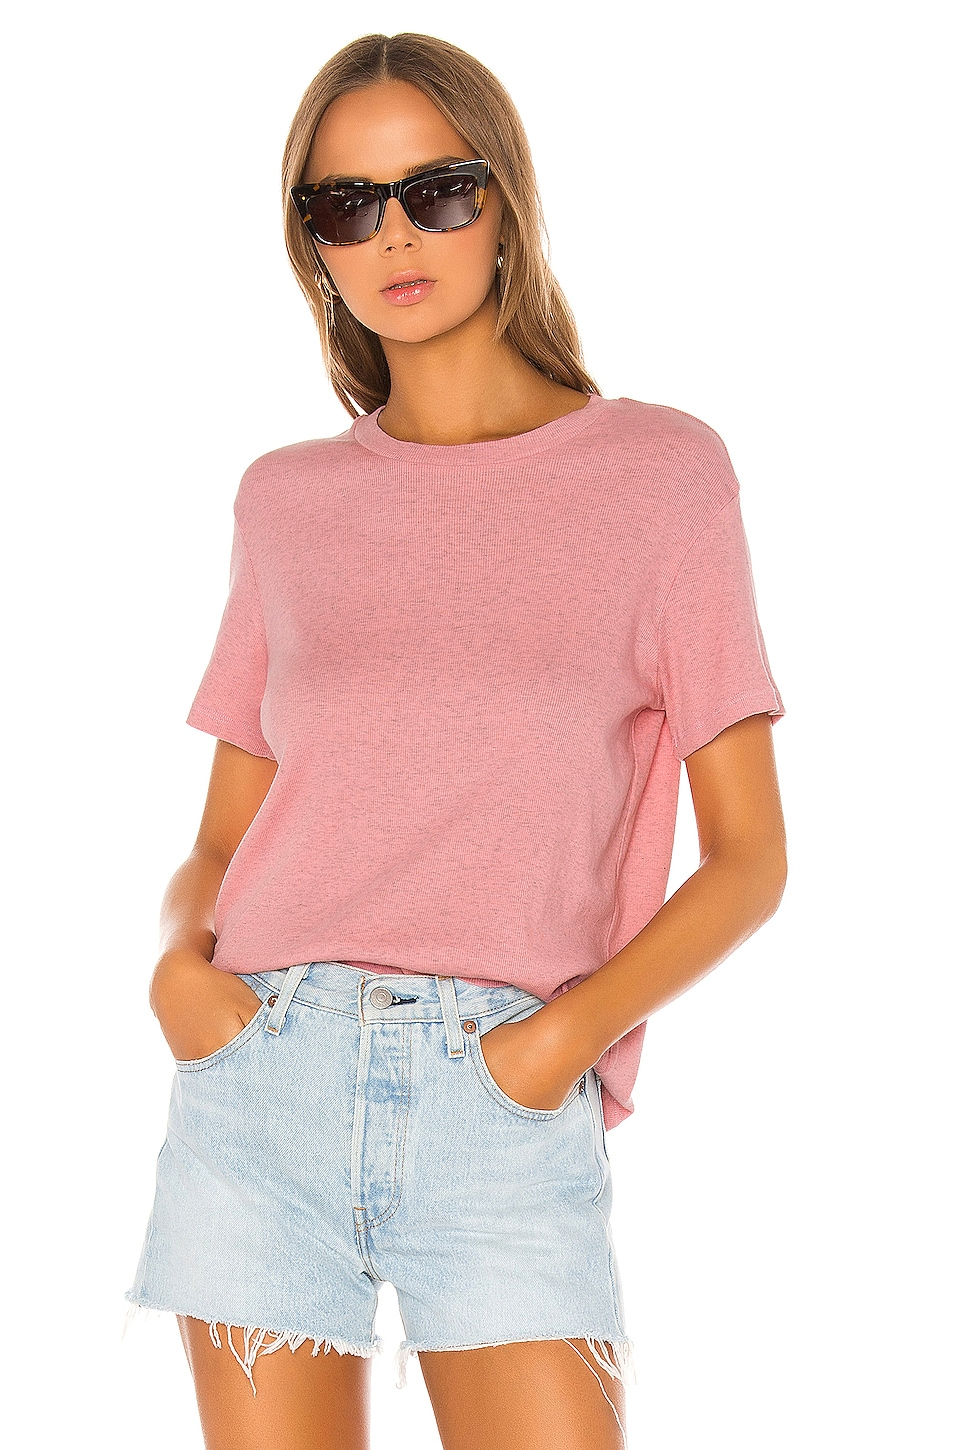 MONROW Rib Relaxed Basic Crew Tee in Peachy Pink